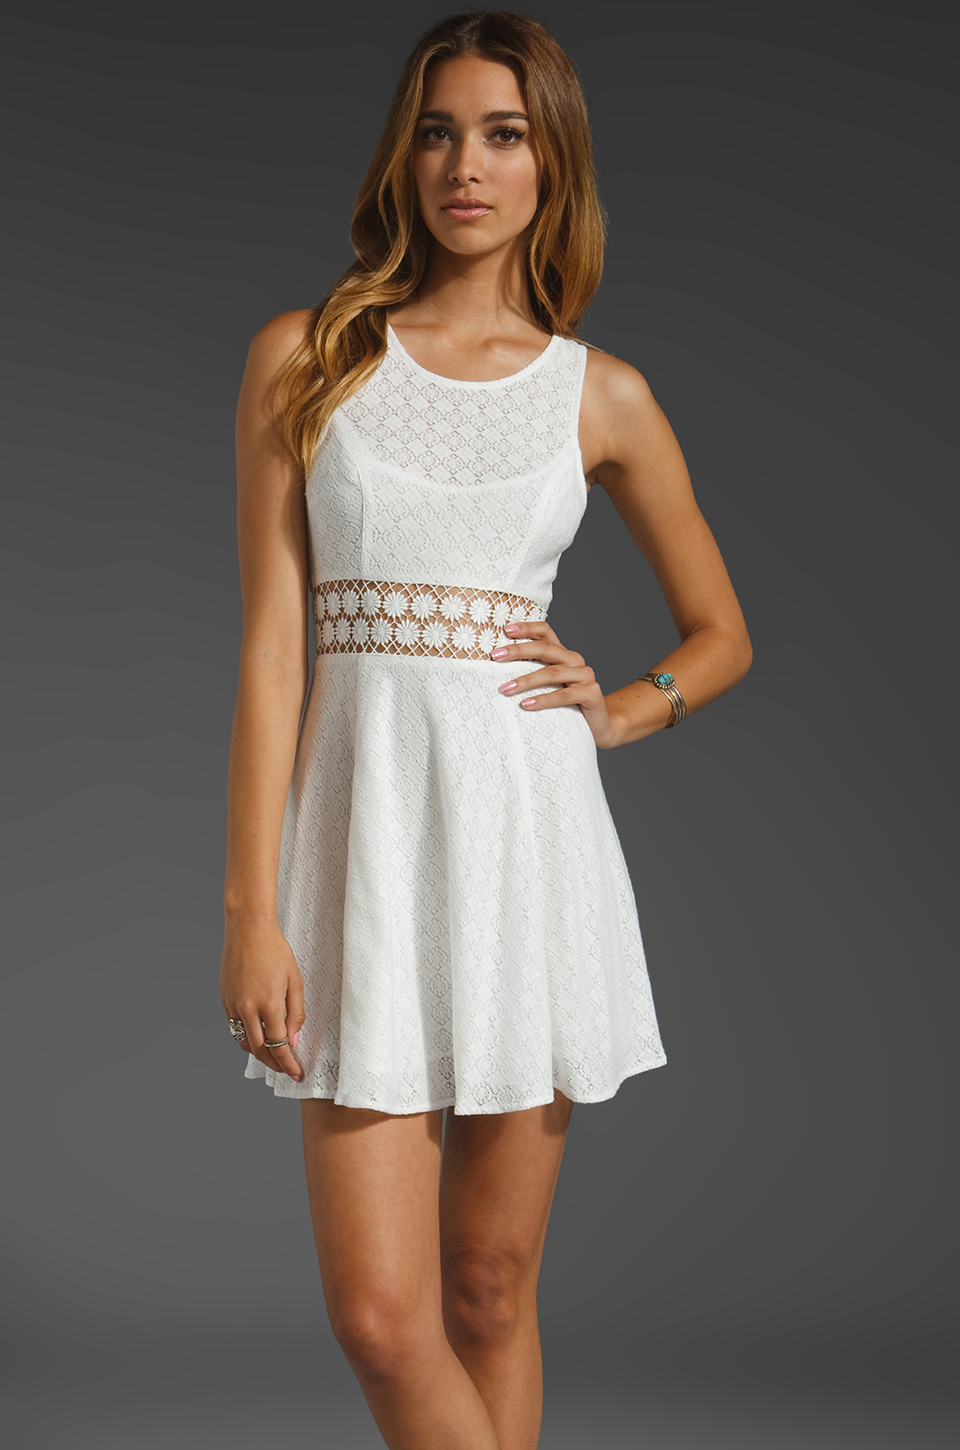 Free People Daisy Waist Dress in Ivory | REVOLVE